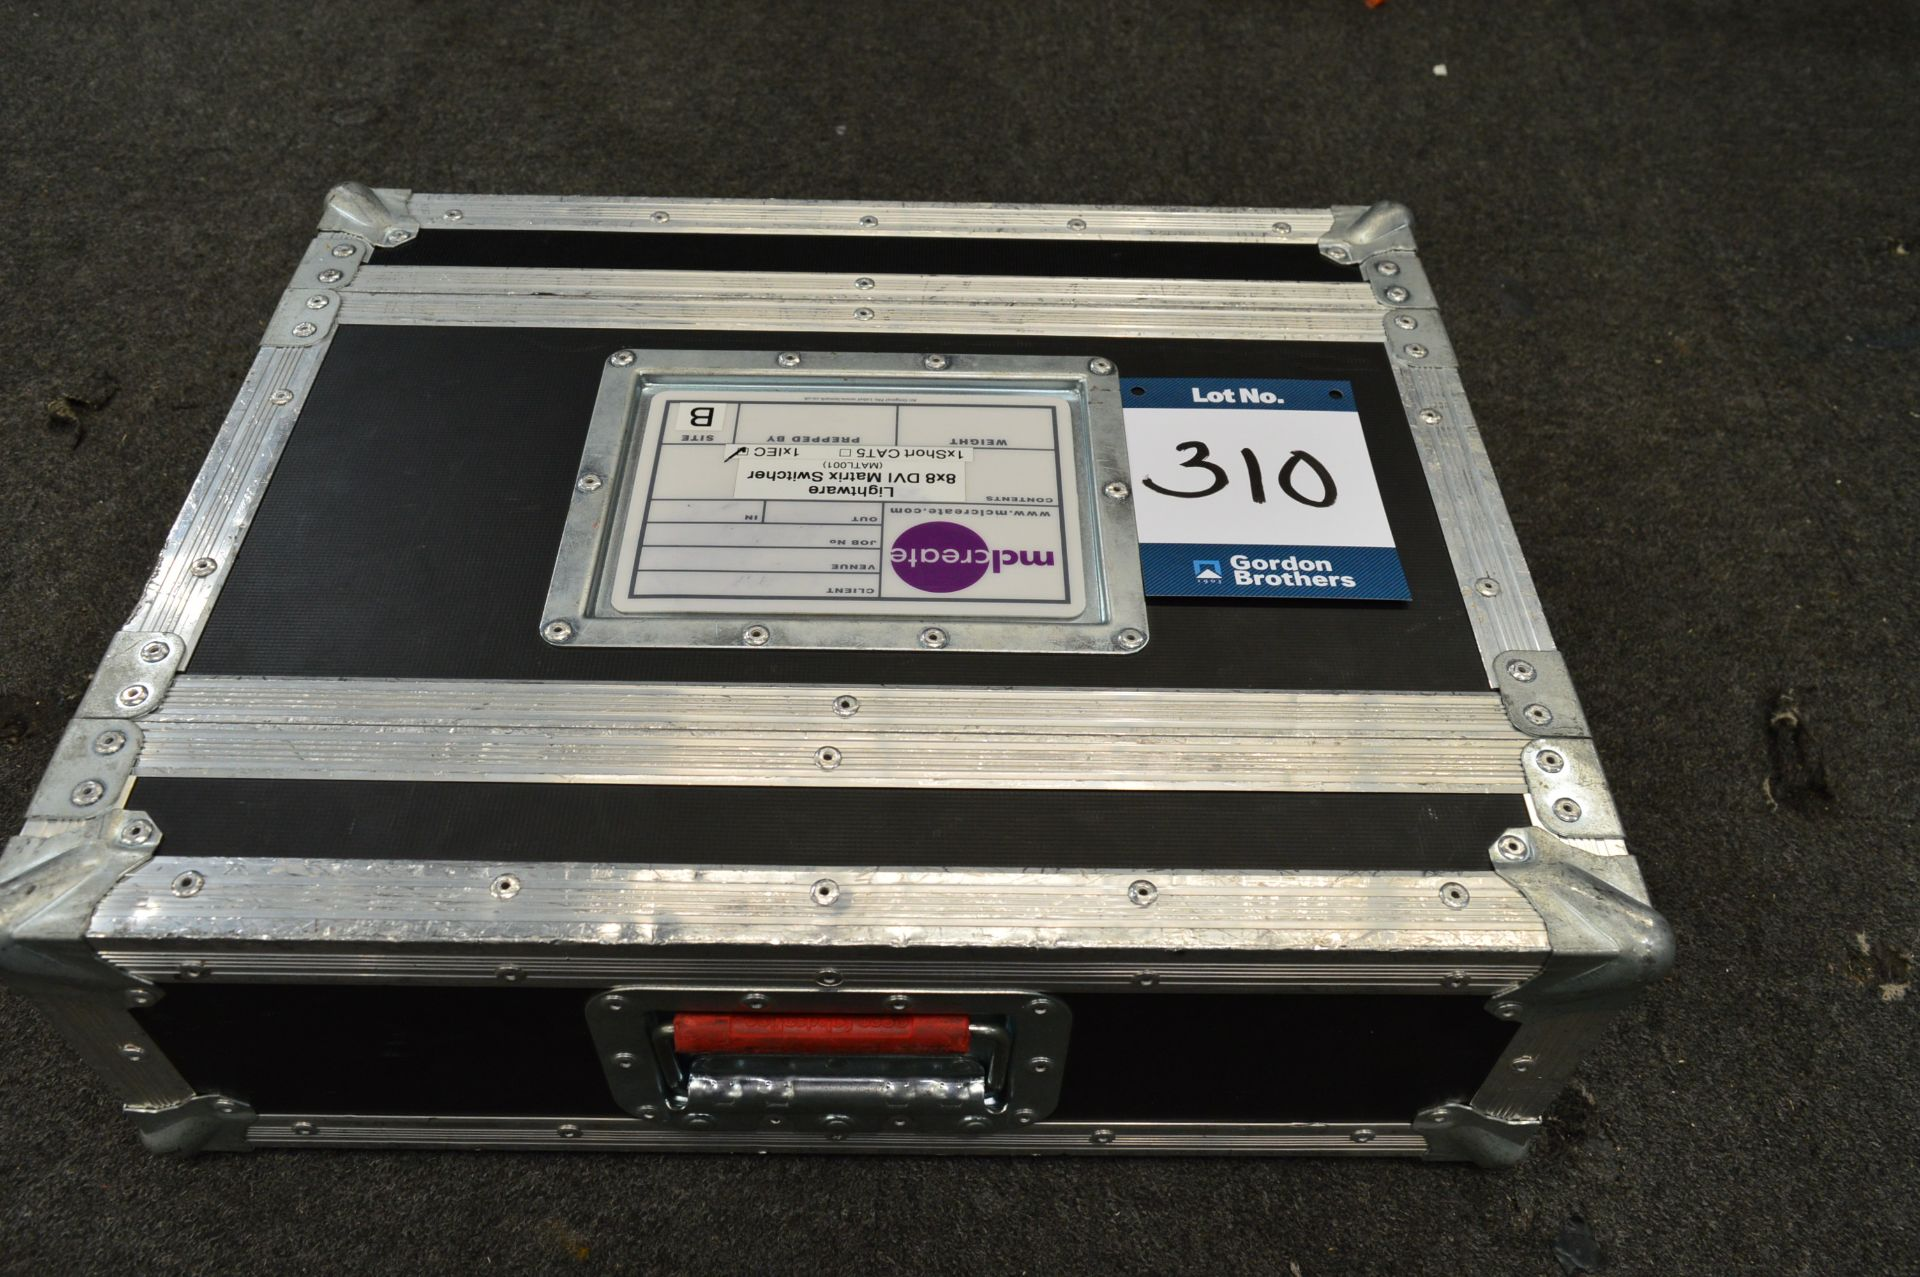 Lot 310 - Lightware Visual Engineering, MX8x8 DVI DL 8x8 dua